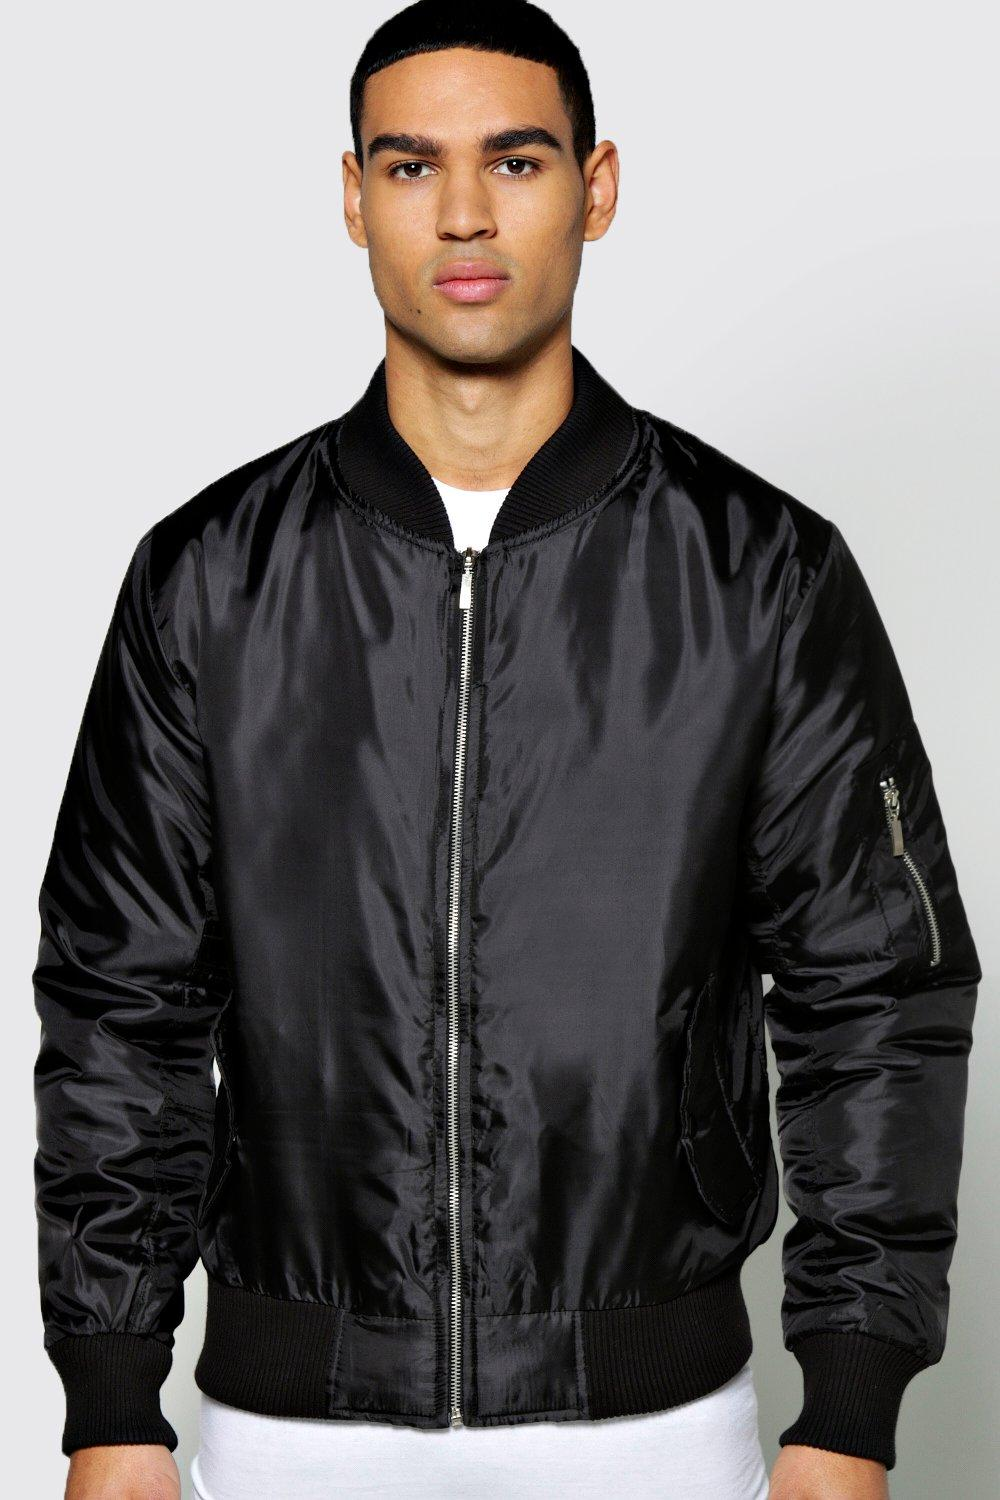 Alpha MA-1 Nylon Flight Jacket - Sage Green - customer reviews. The Authentic Alpha MA-1 Flight Jacket, often copied but never duplicated. This is the classic jacket made by Alpha Industries for the military for over 40 years.